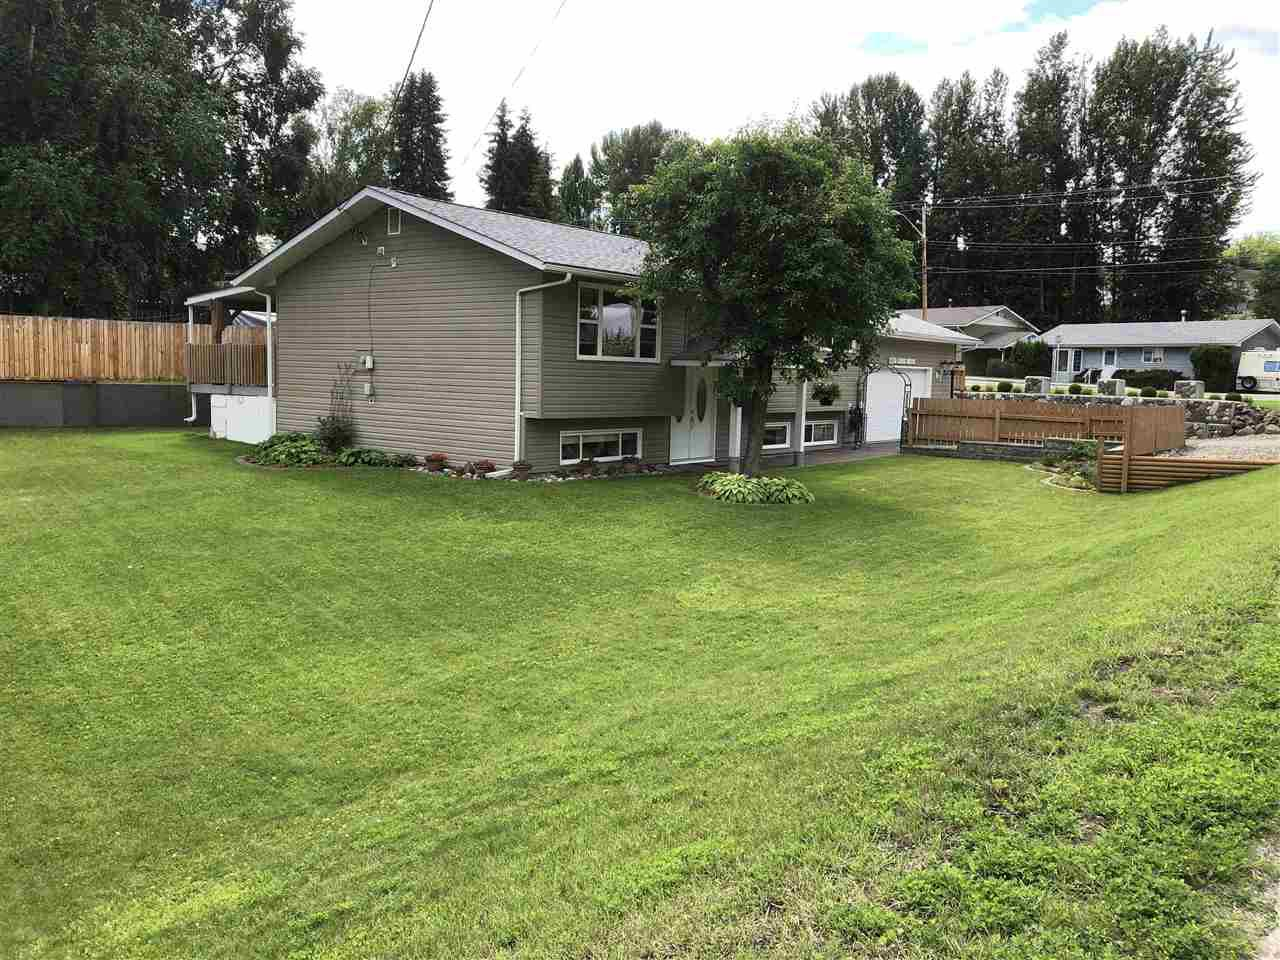 Photo 3: Photos: 1270 LEWIS Drive in Quesnel: Quesnel - Town House for sale (Quesnel (Zone 28))  : MLS®# R2478328